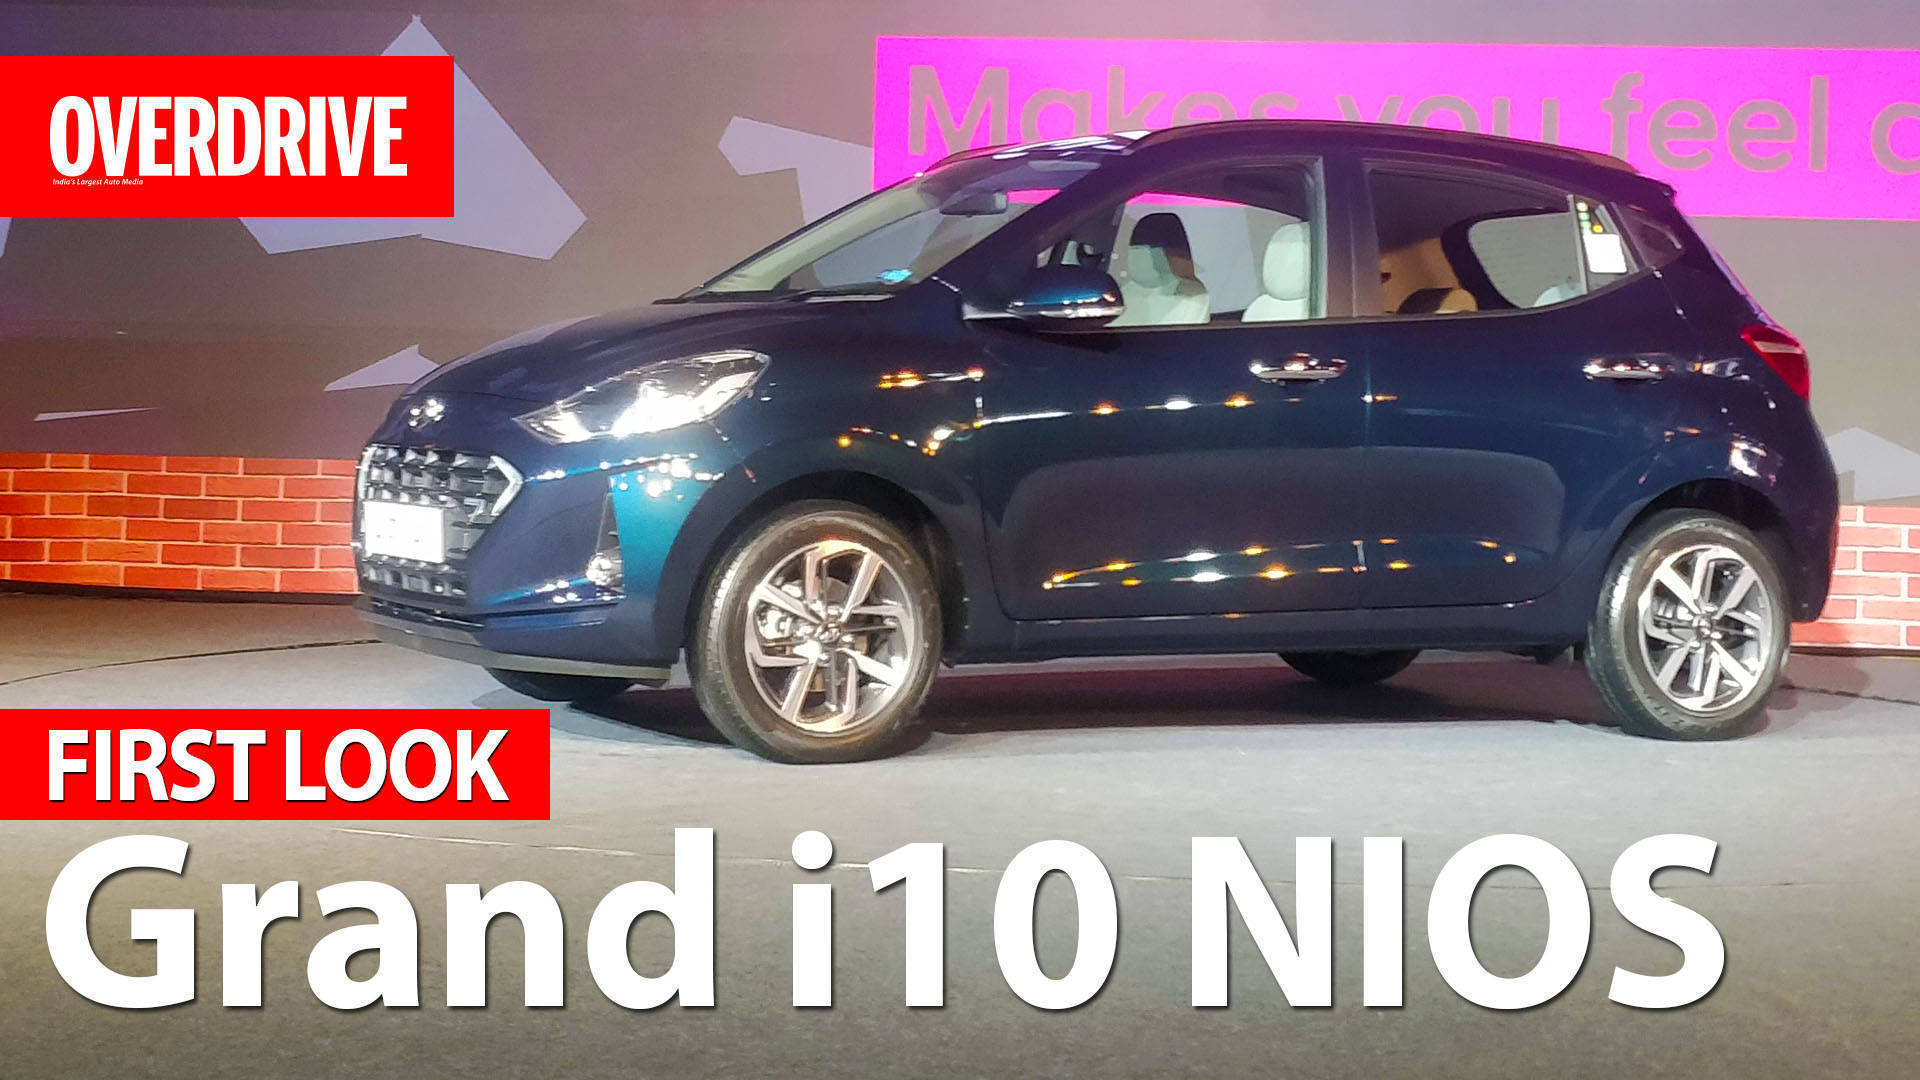 Grand i10 Nios - First Look